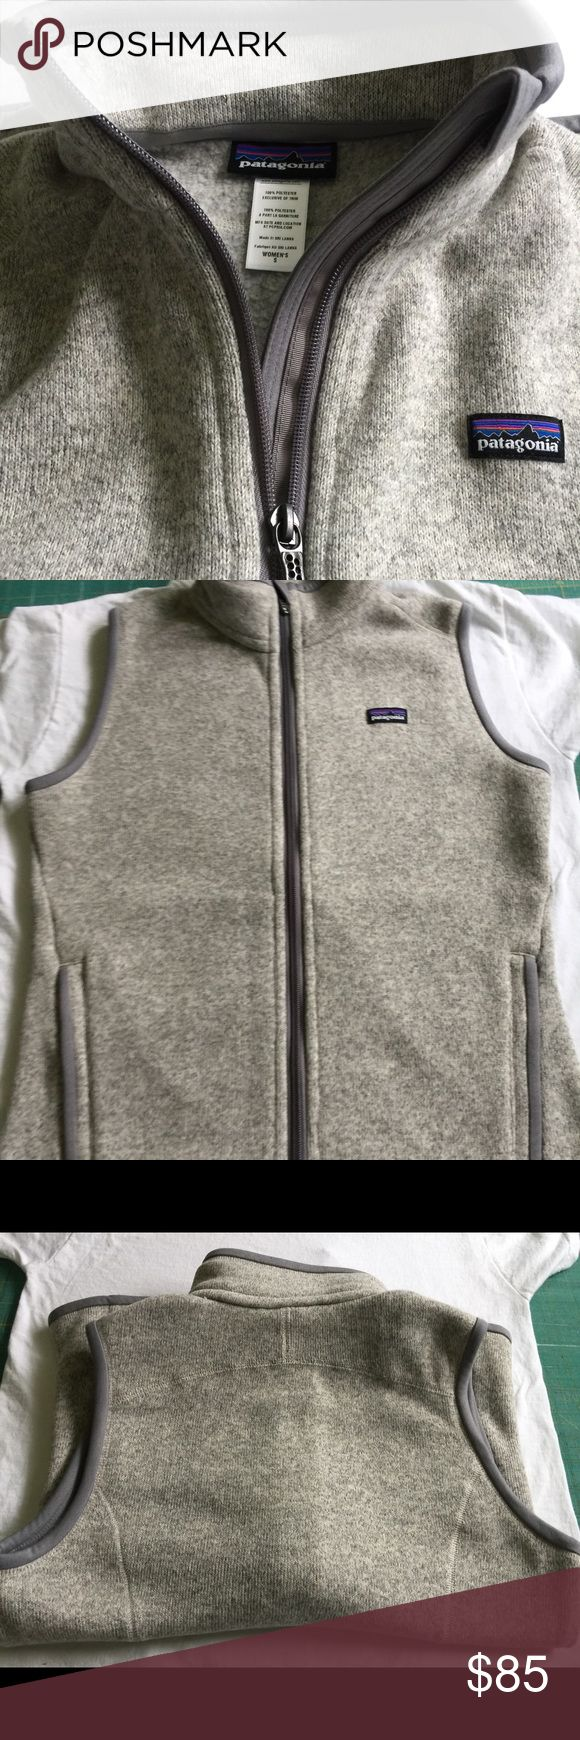 "Patagonia Better Sweater Vest Women's Small Never worn!!! Measures 18"" across the chest. Patagonia Jackets & Coats Vests"